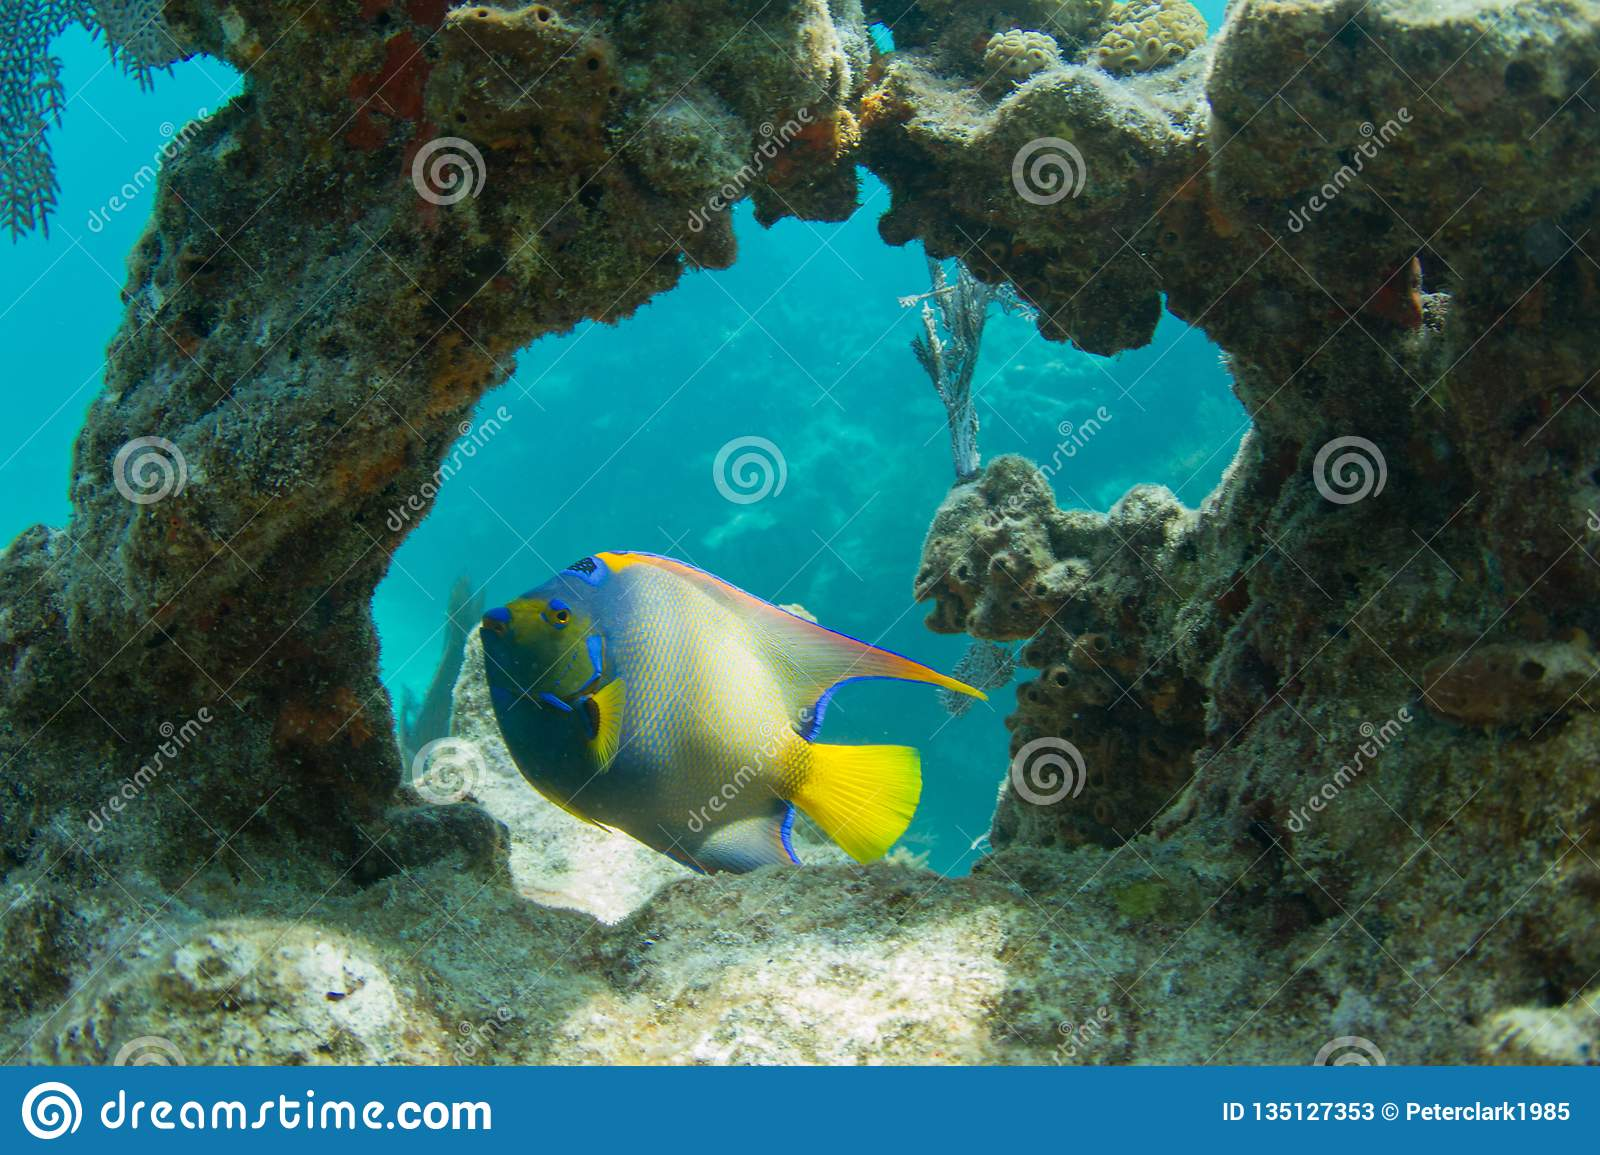 Queen Angelfish through Coral Arch